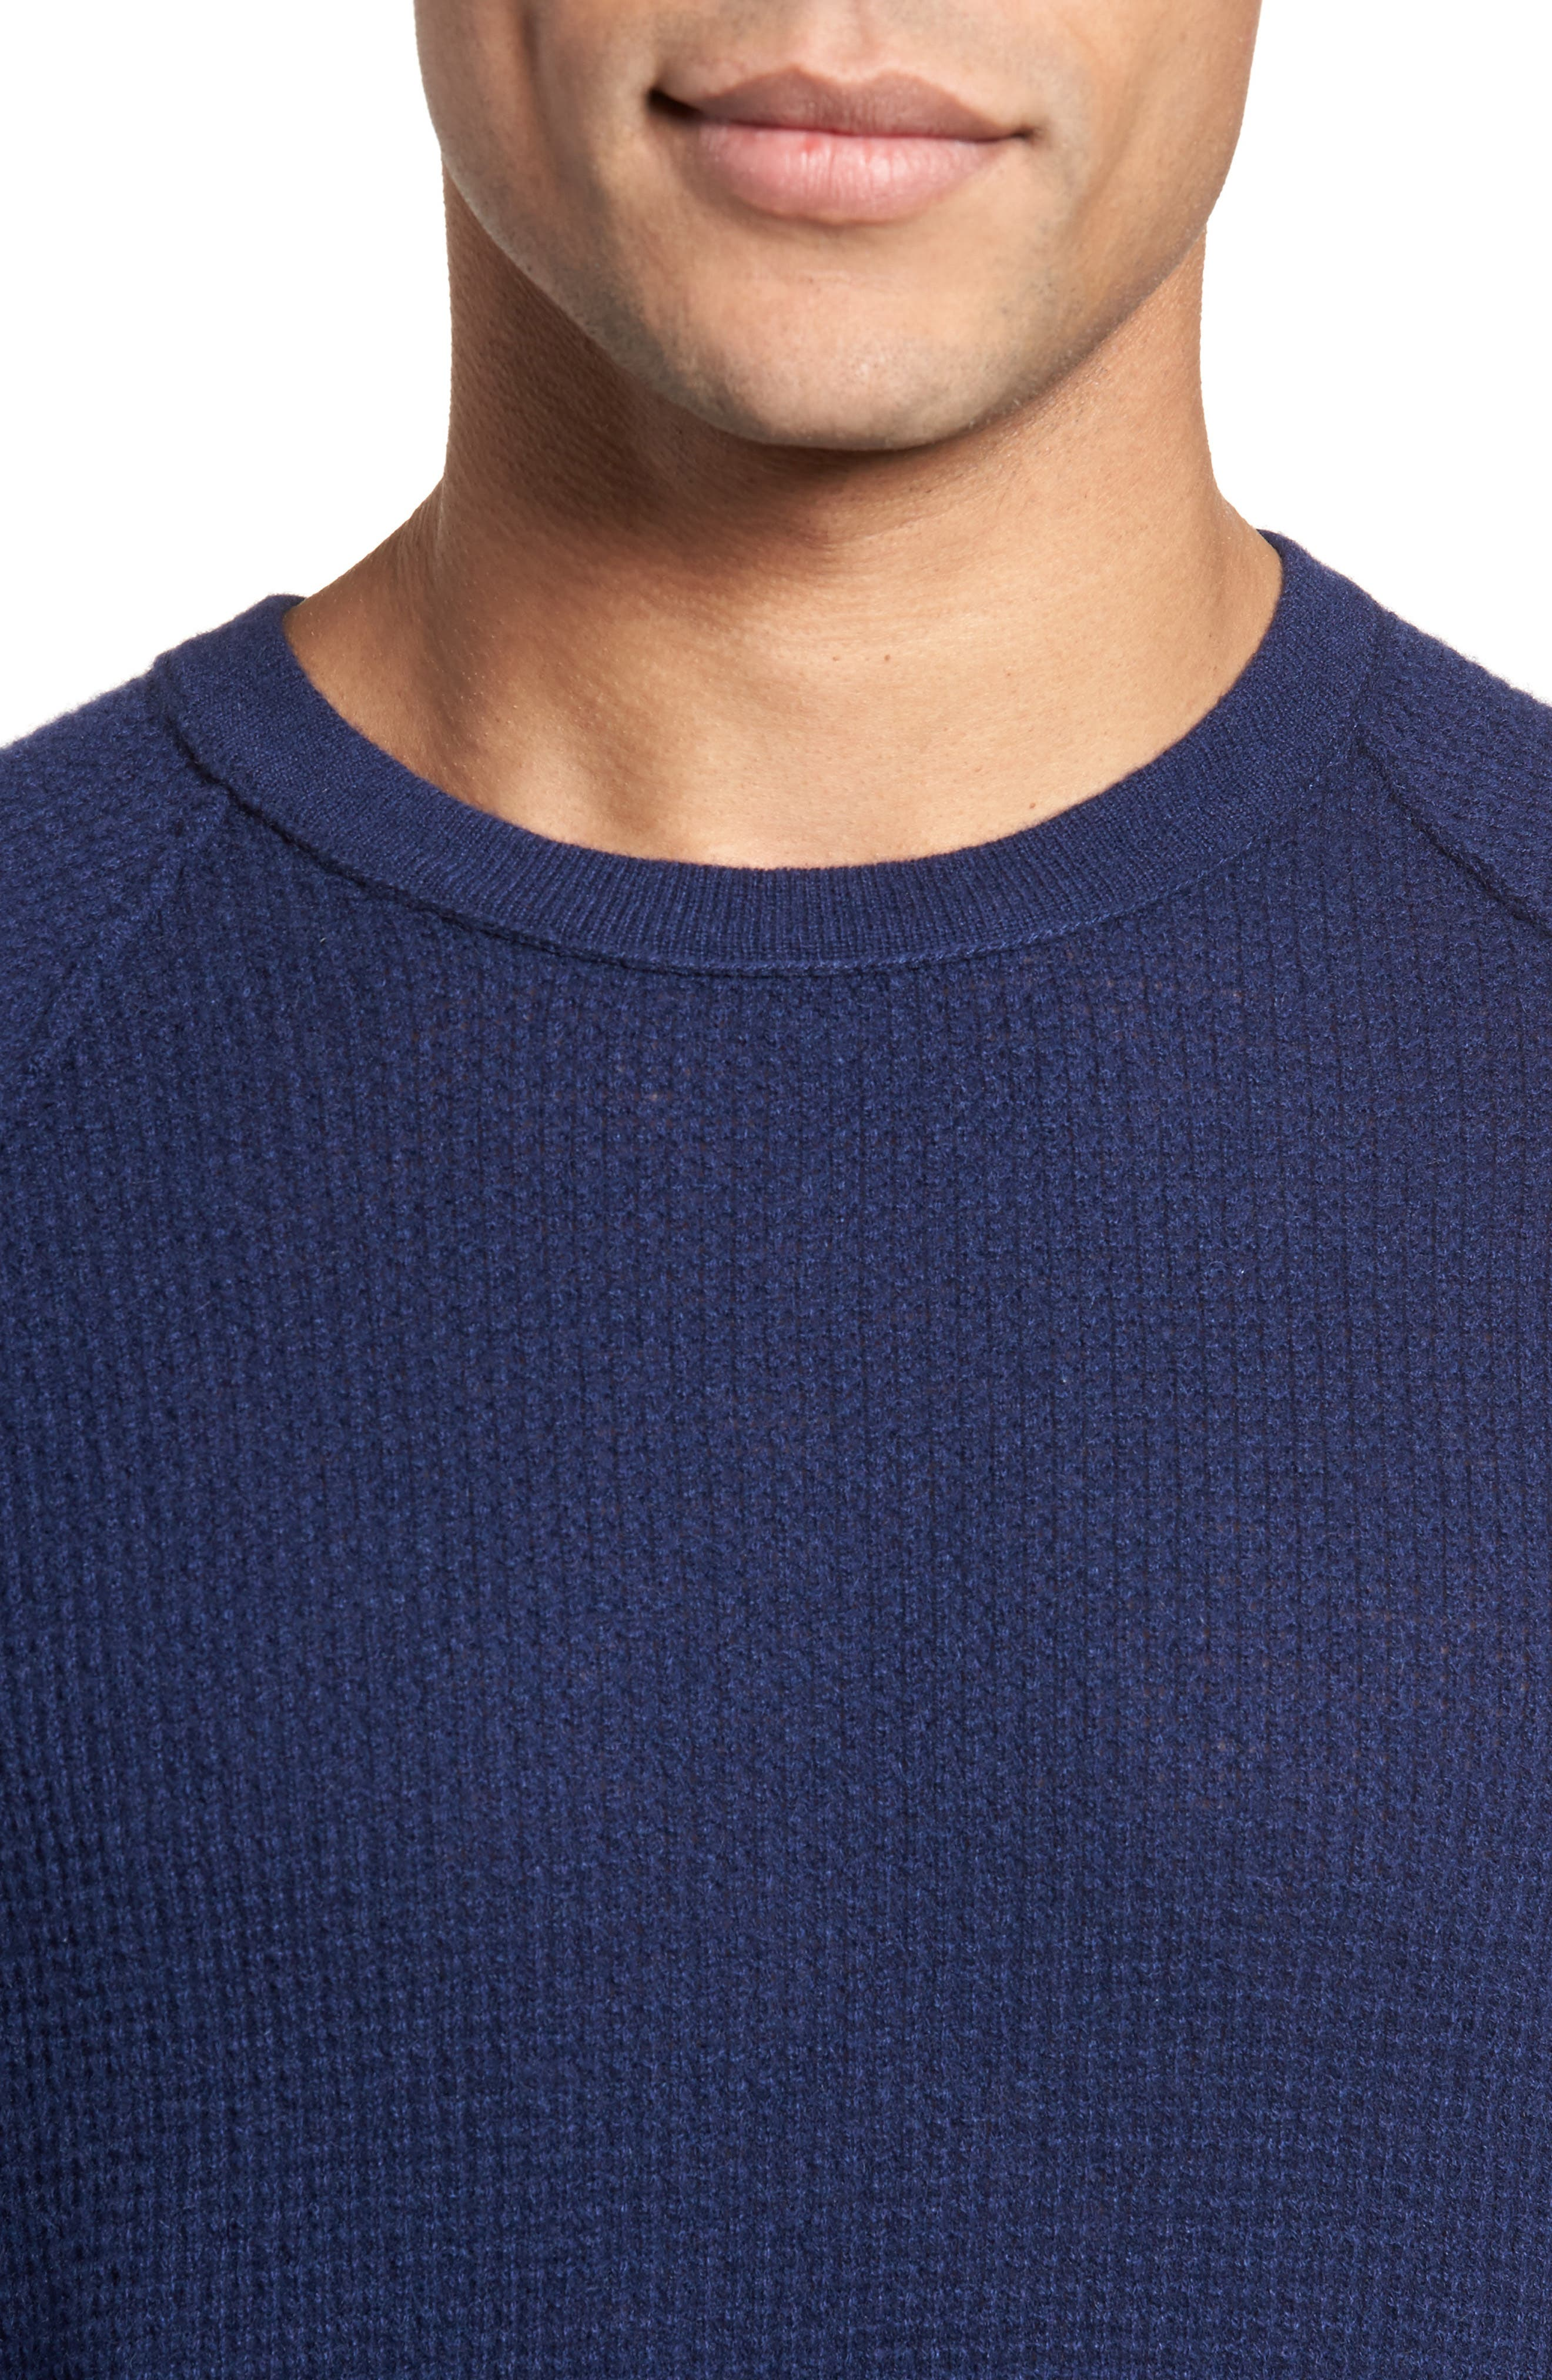 Thermal Cashmere Sweater,                             Alternate thumbnail 4, color,                             Blue